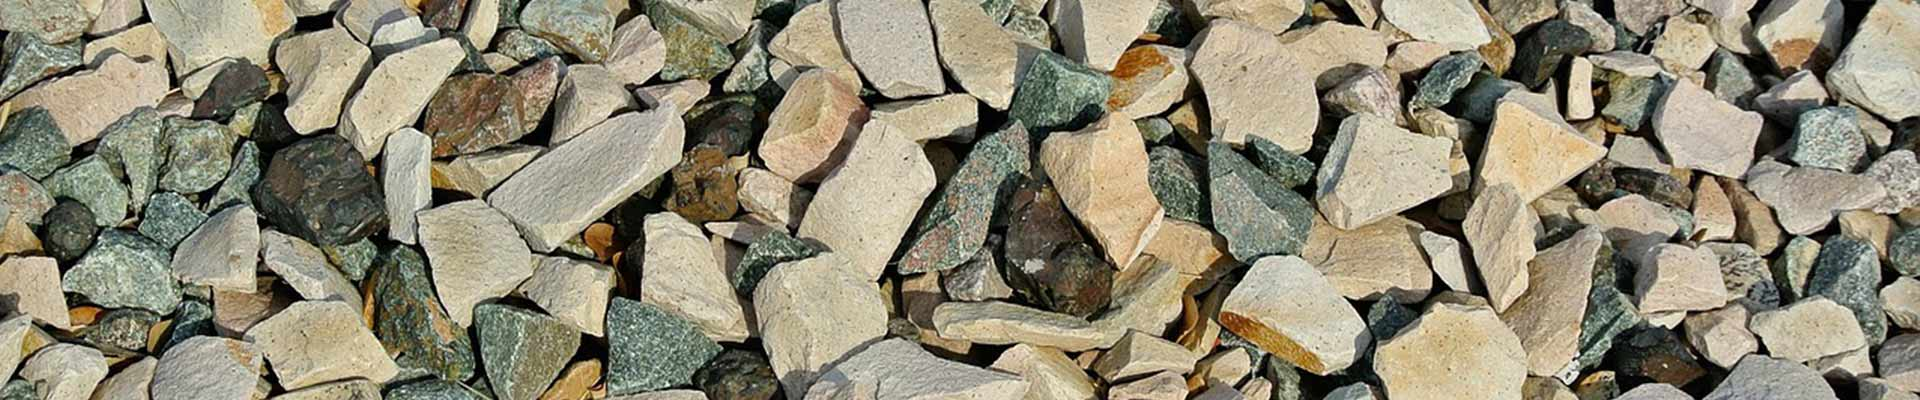 Aggregate - Crushed Rock - Pea Gravel - River Rock - Crusher Dust - Keon Landscaping Supplies - Moose Jaw